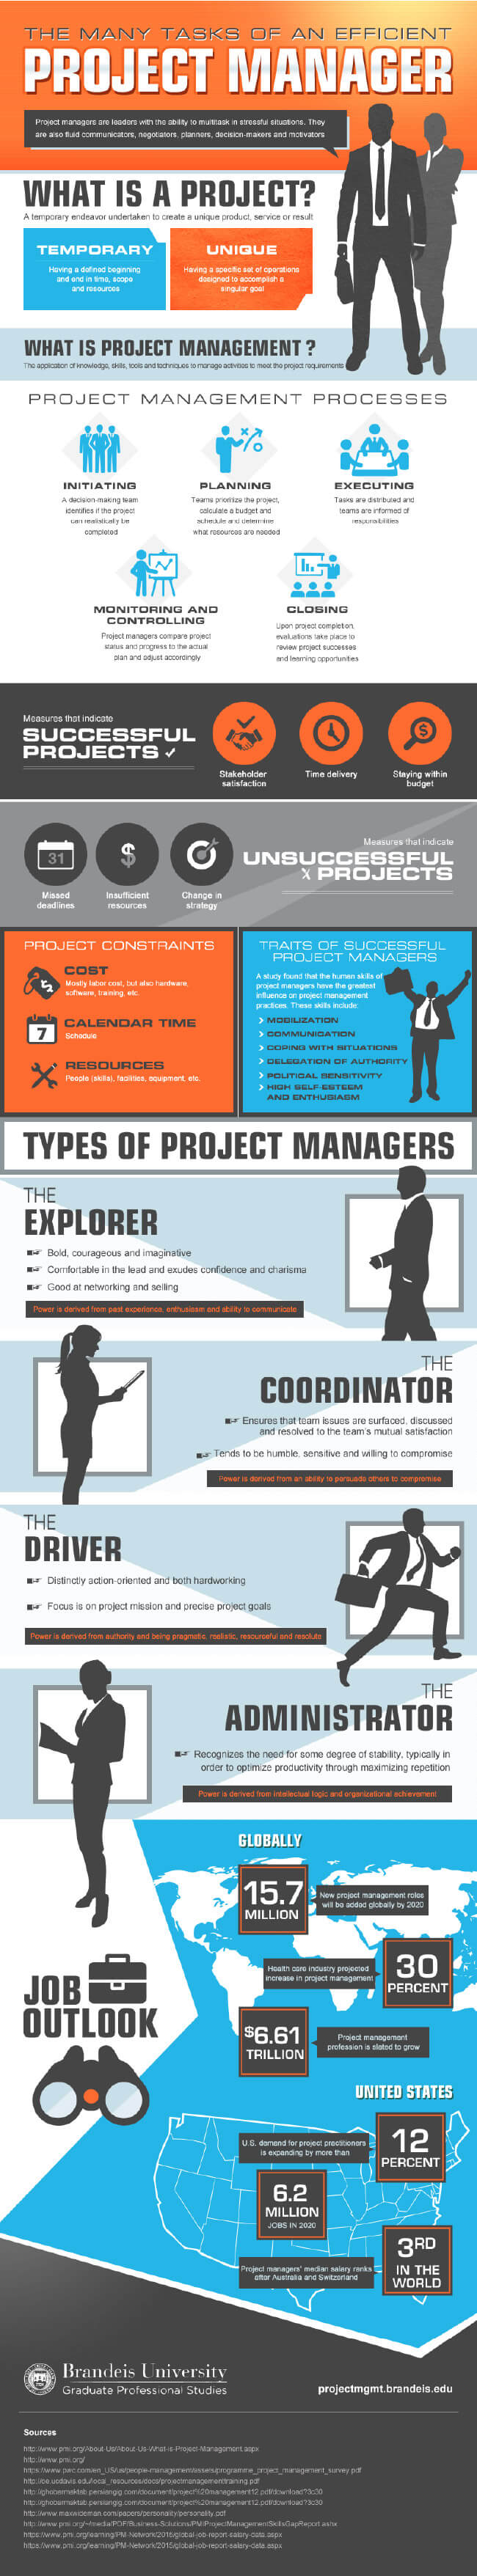 what the heck does a project manager do anyway tipsographic main